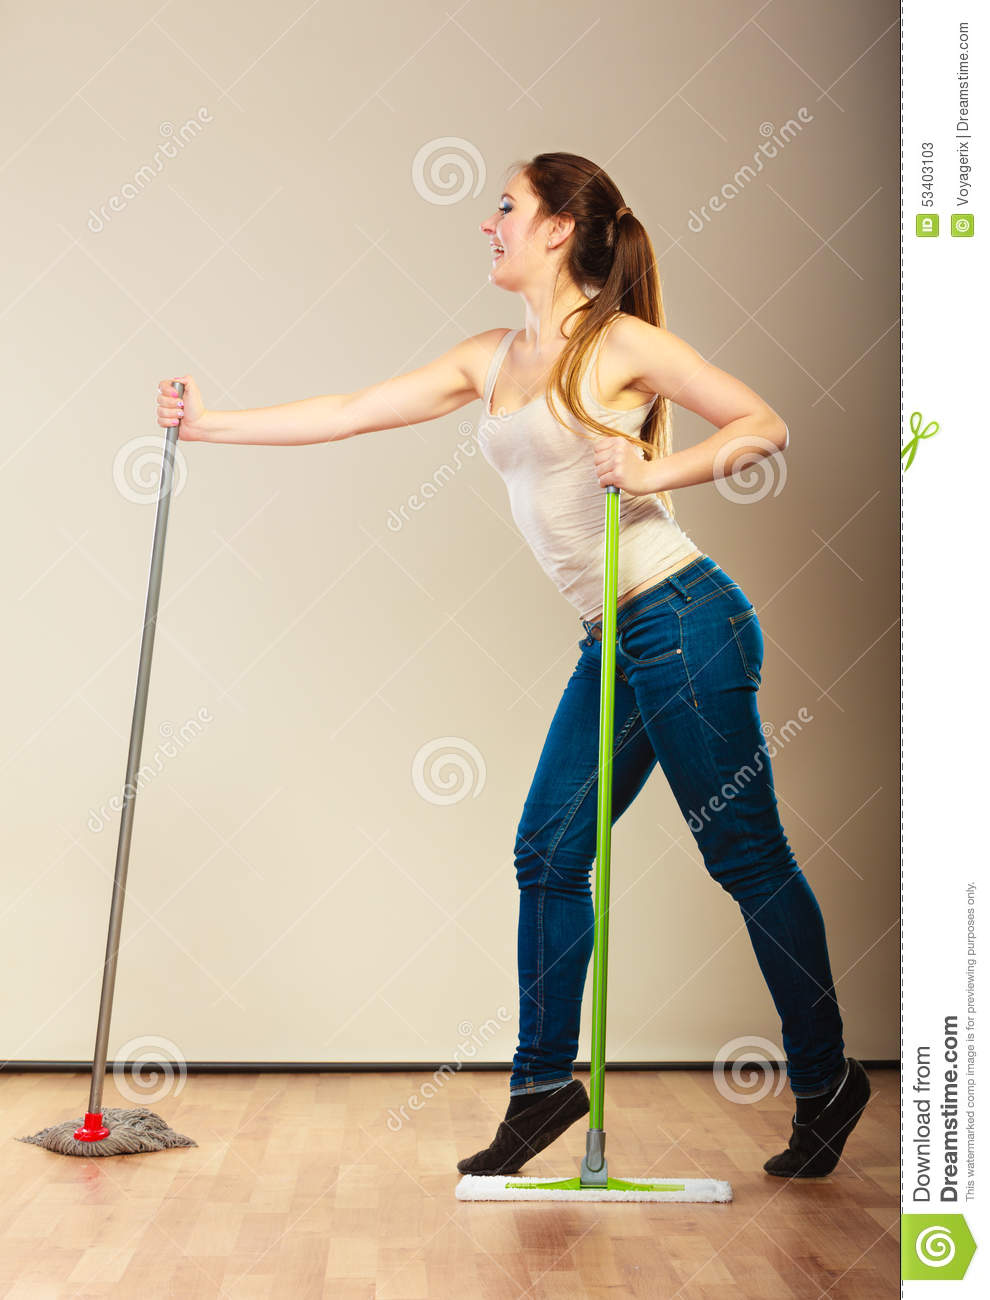 Funny Cleaning Woman Mopping Floor Dancing Stock Photo